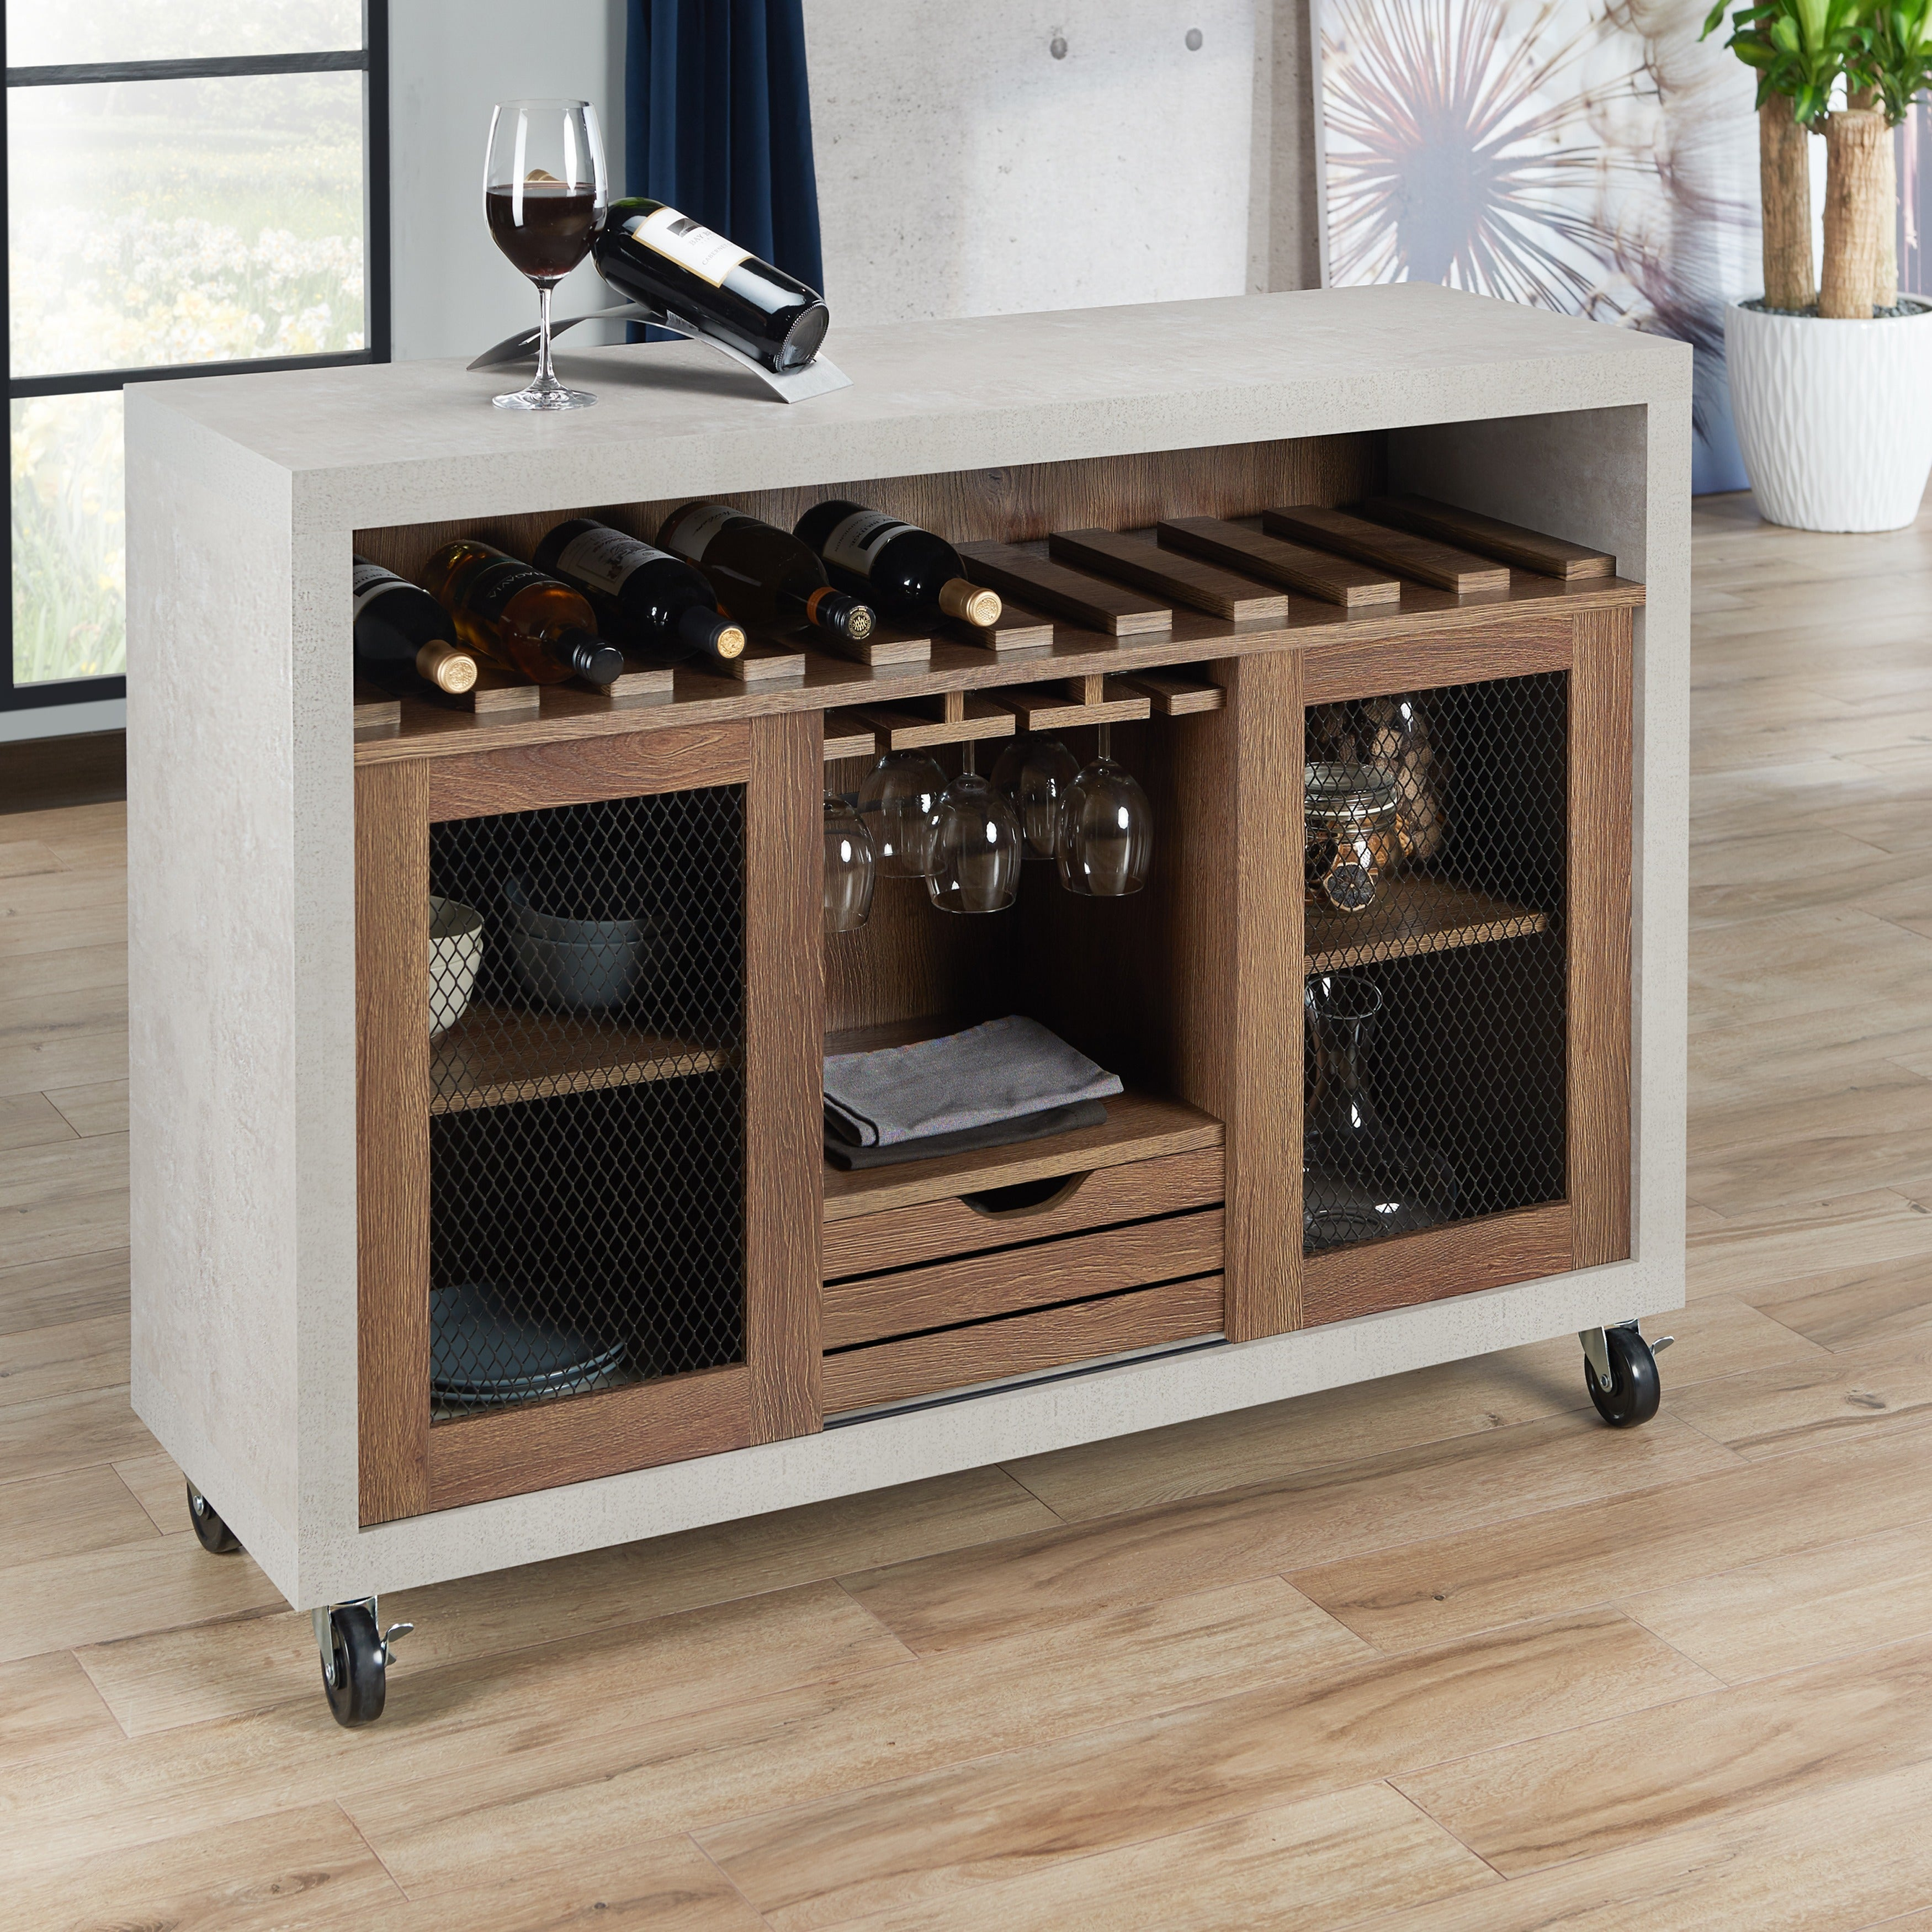 Finest Cool Furniture Of America Gelenan Industrial Cementlike Buffet With  Sideboard Fr Kche With Kche Loft Style With Highboard Fr Kche With Kche ...